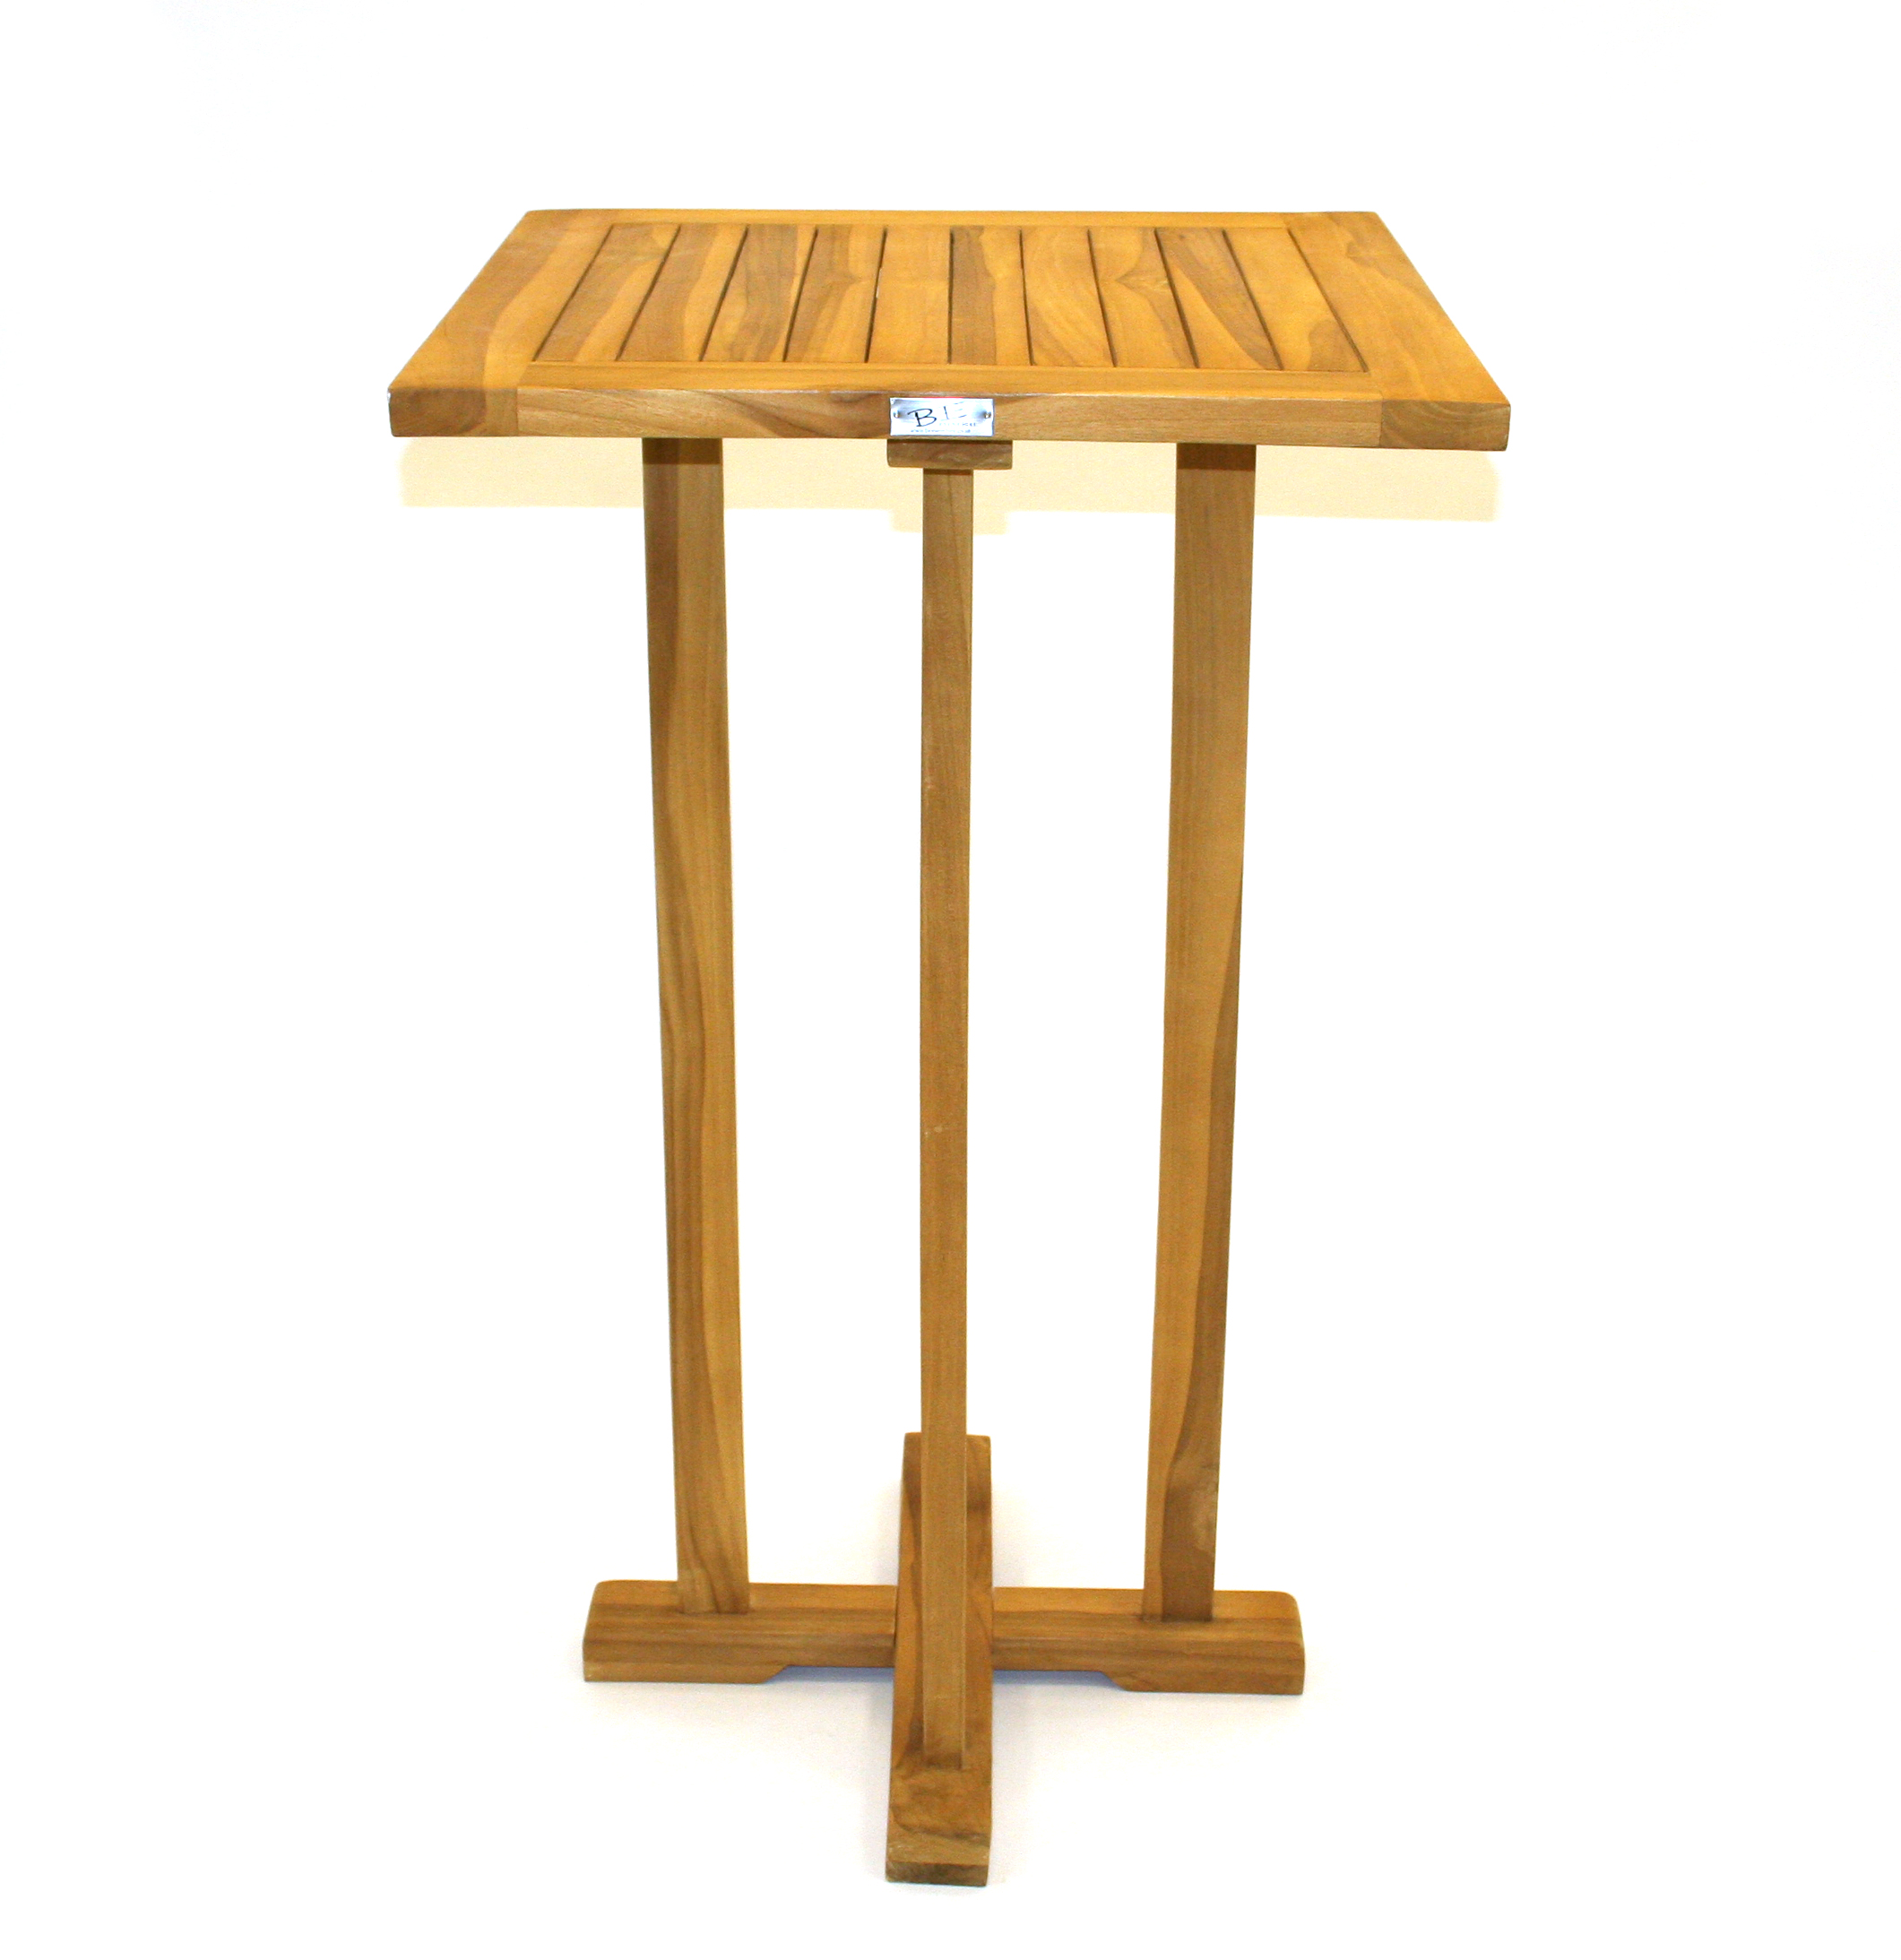 Cm Tall Teak Tables With Cm X Cm Square Tops BE Event Hire - Teak high top table